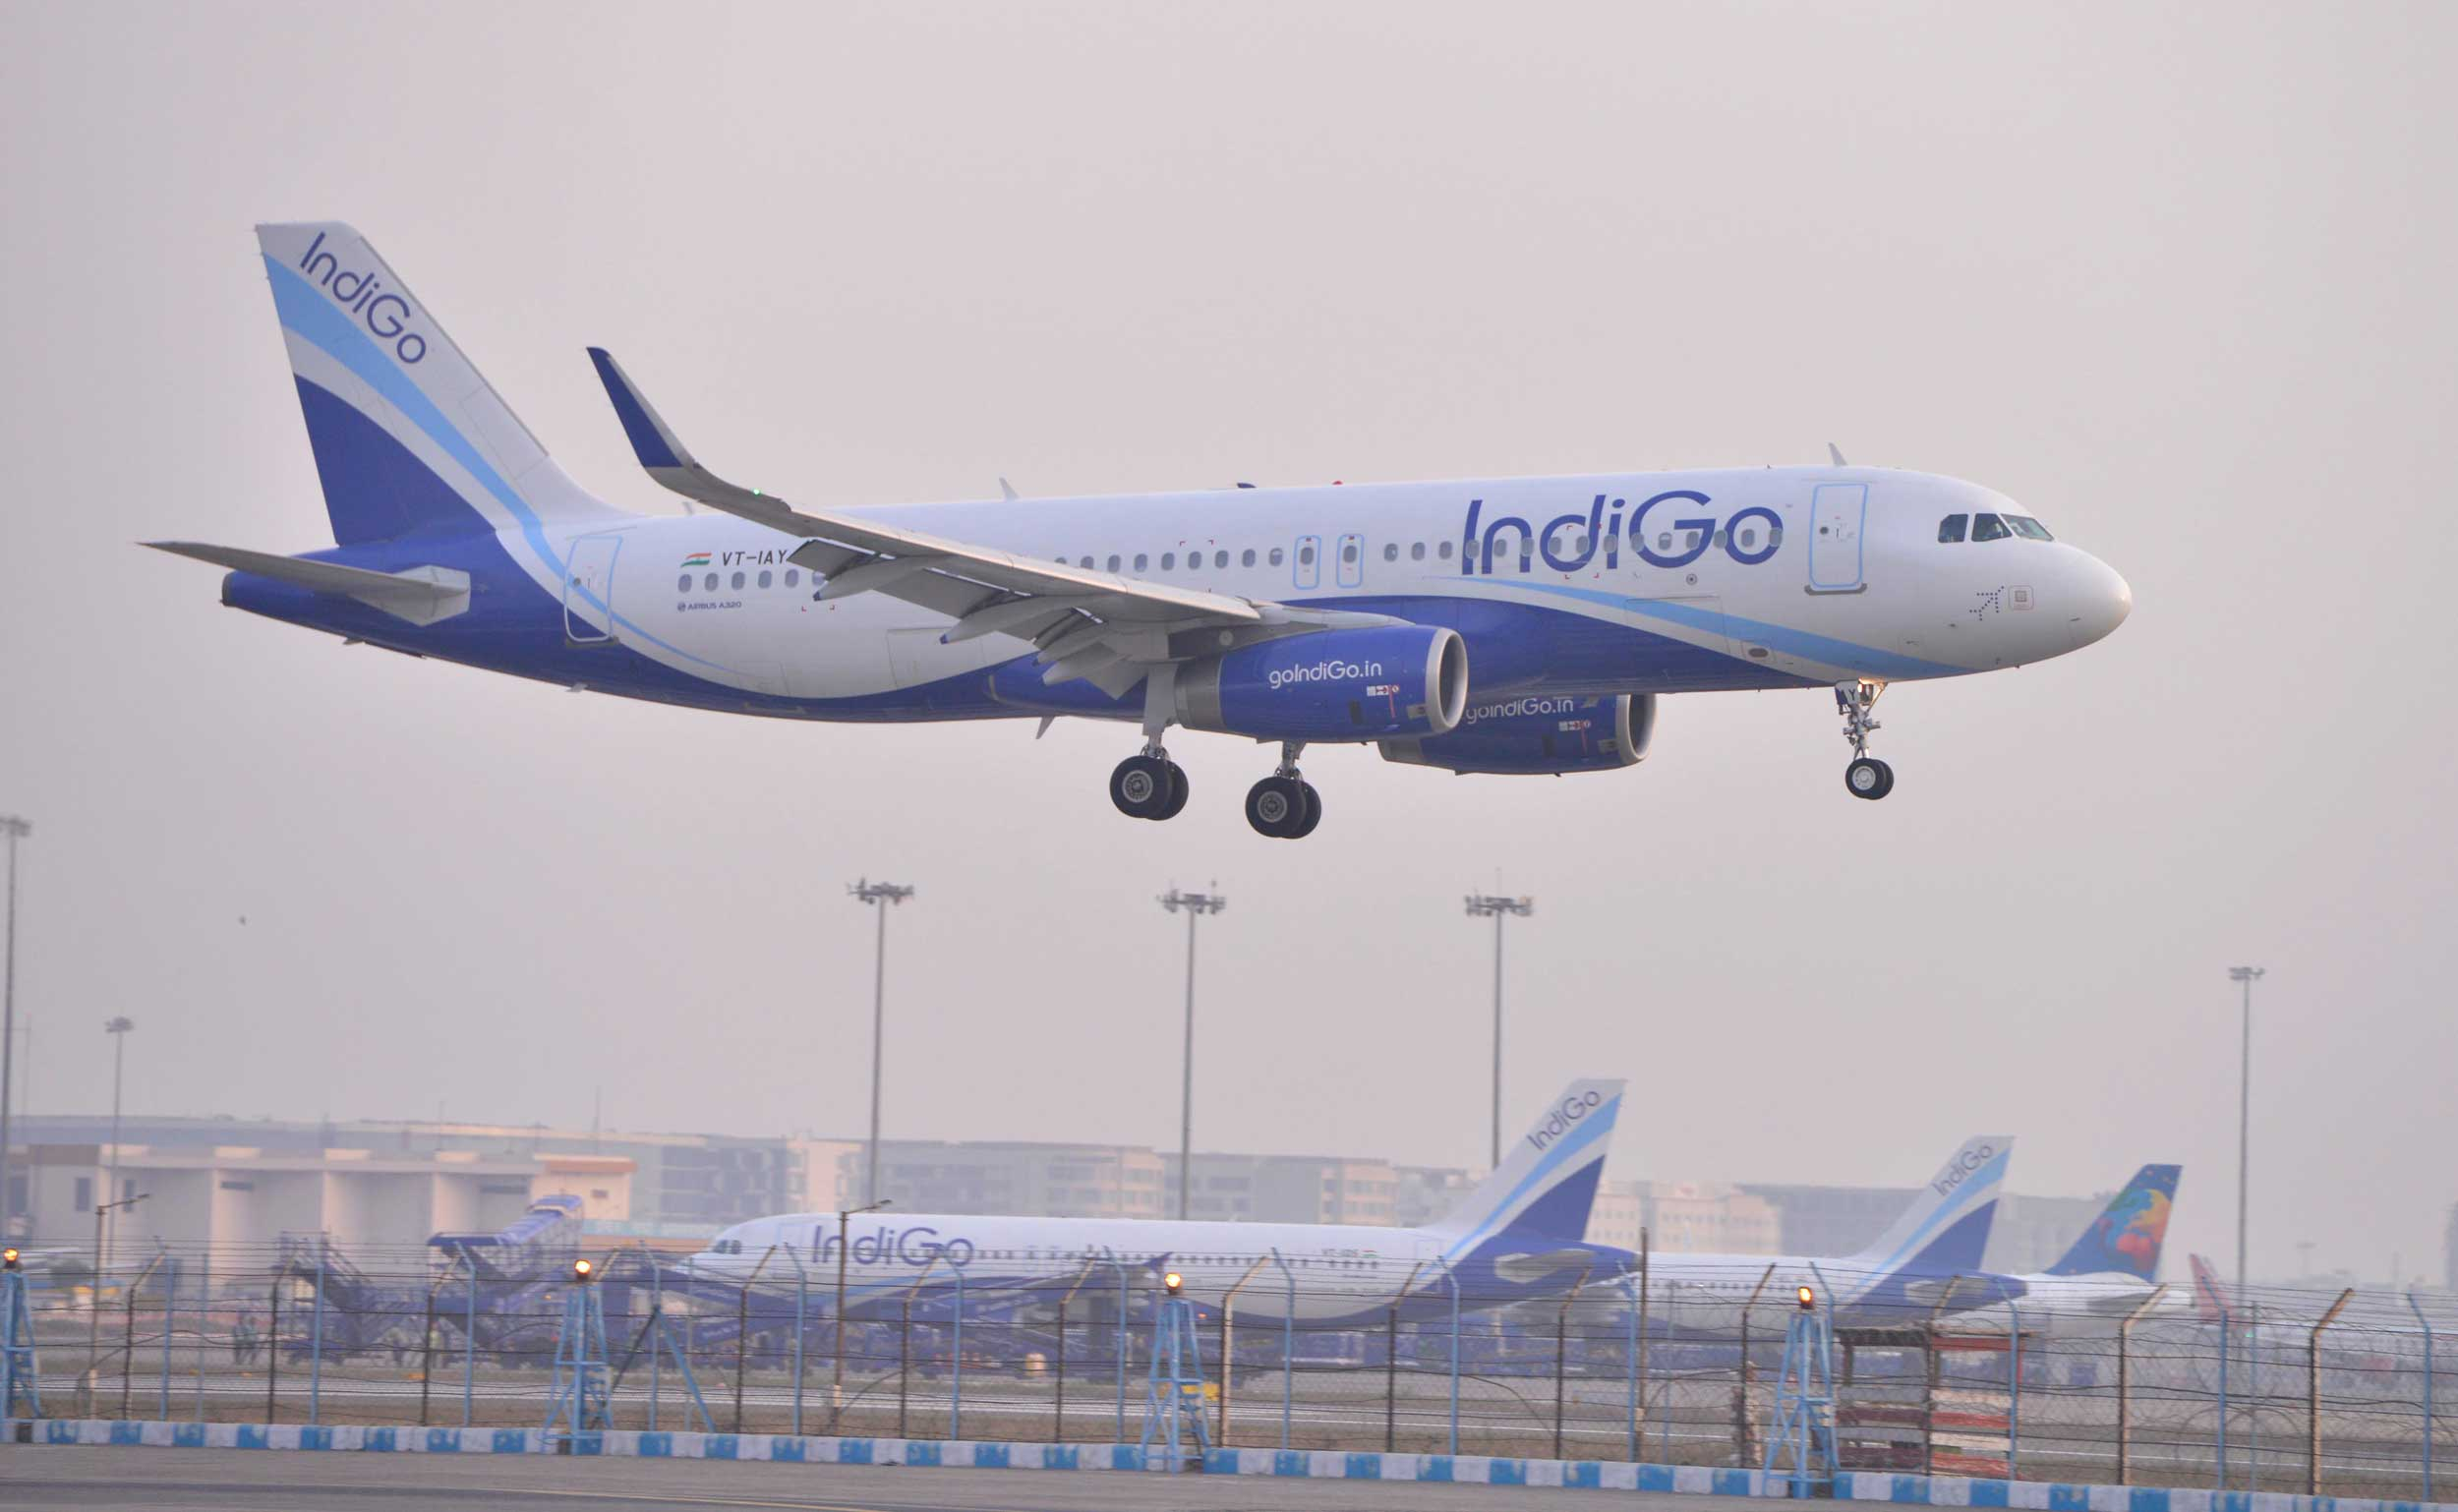 Ronojoy Dutta joins IndiGo at a time the airline is striving to realise its ambition of international growth even as it grapples with high costs and low yields at home.